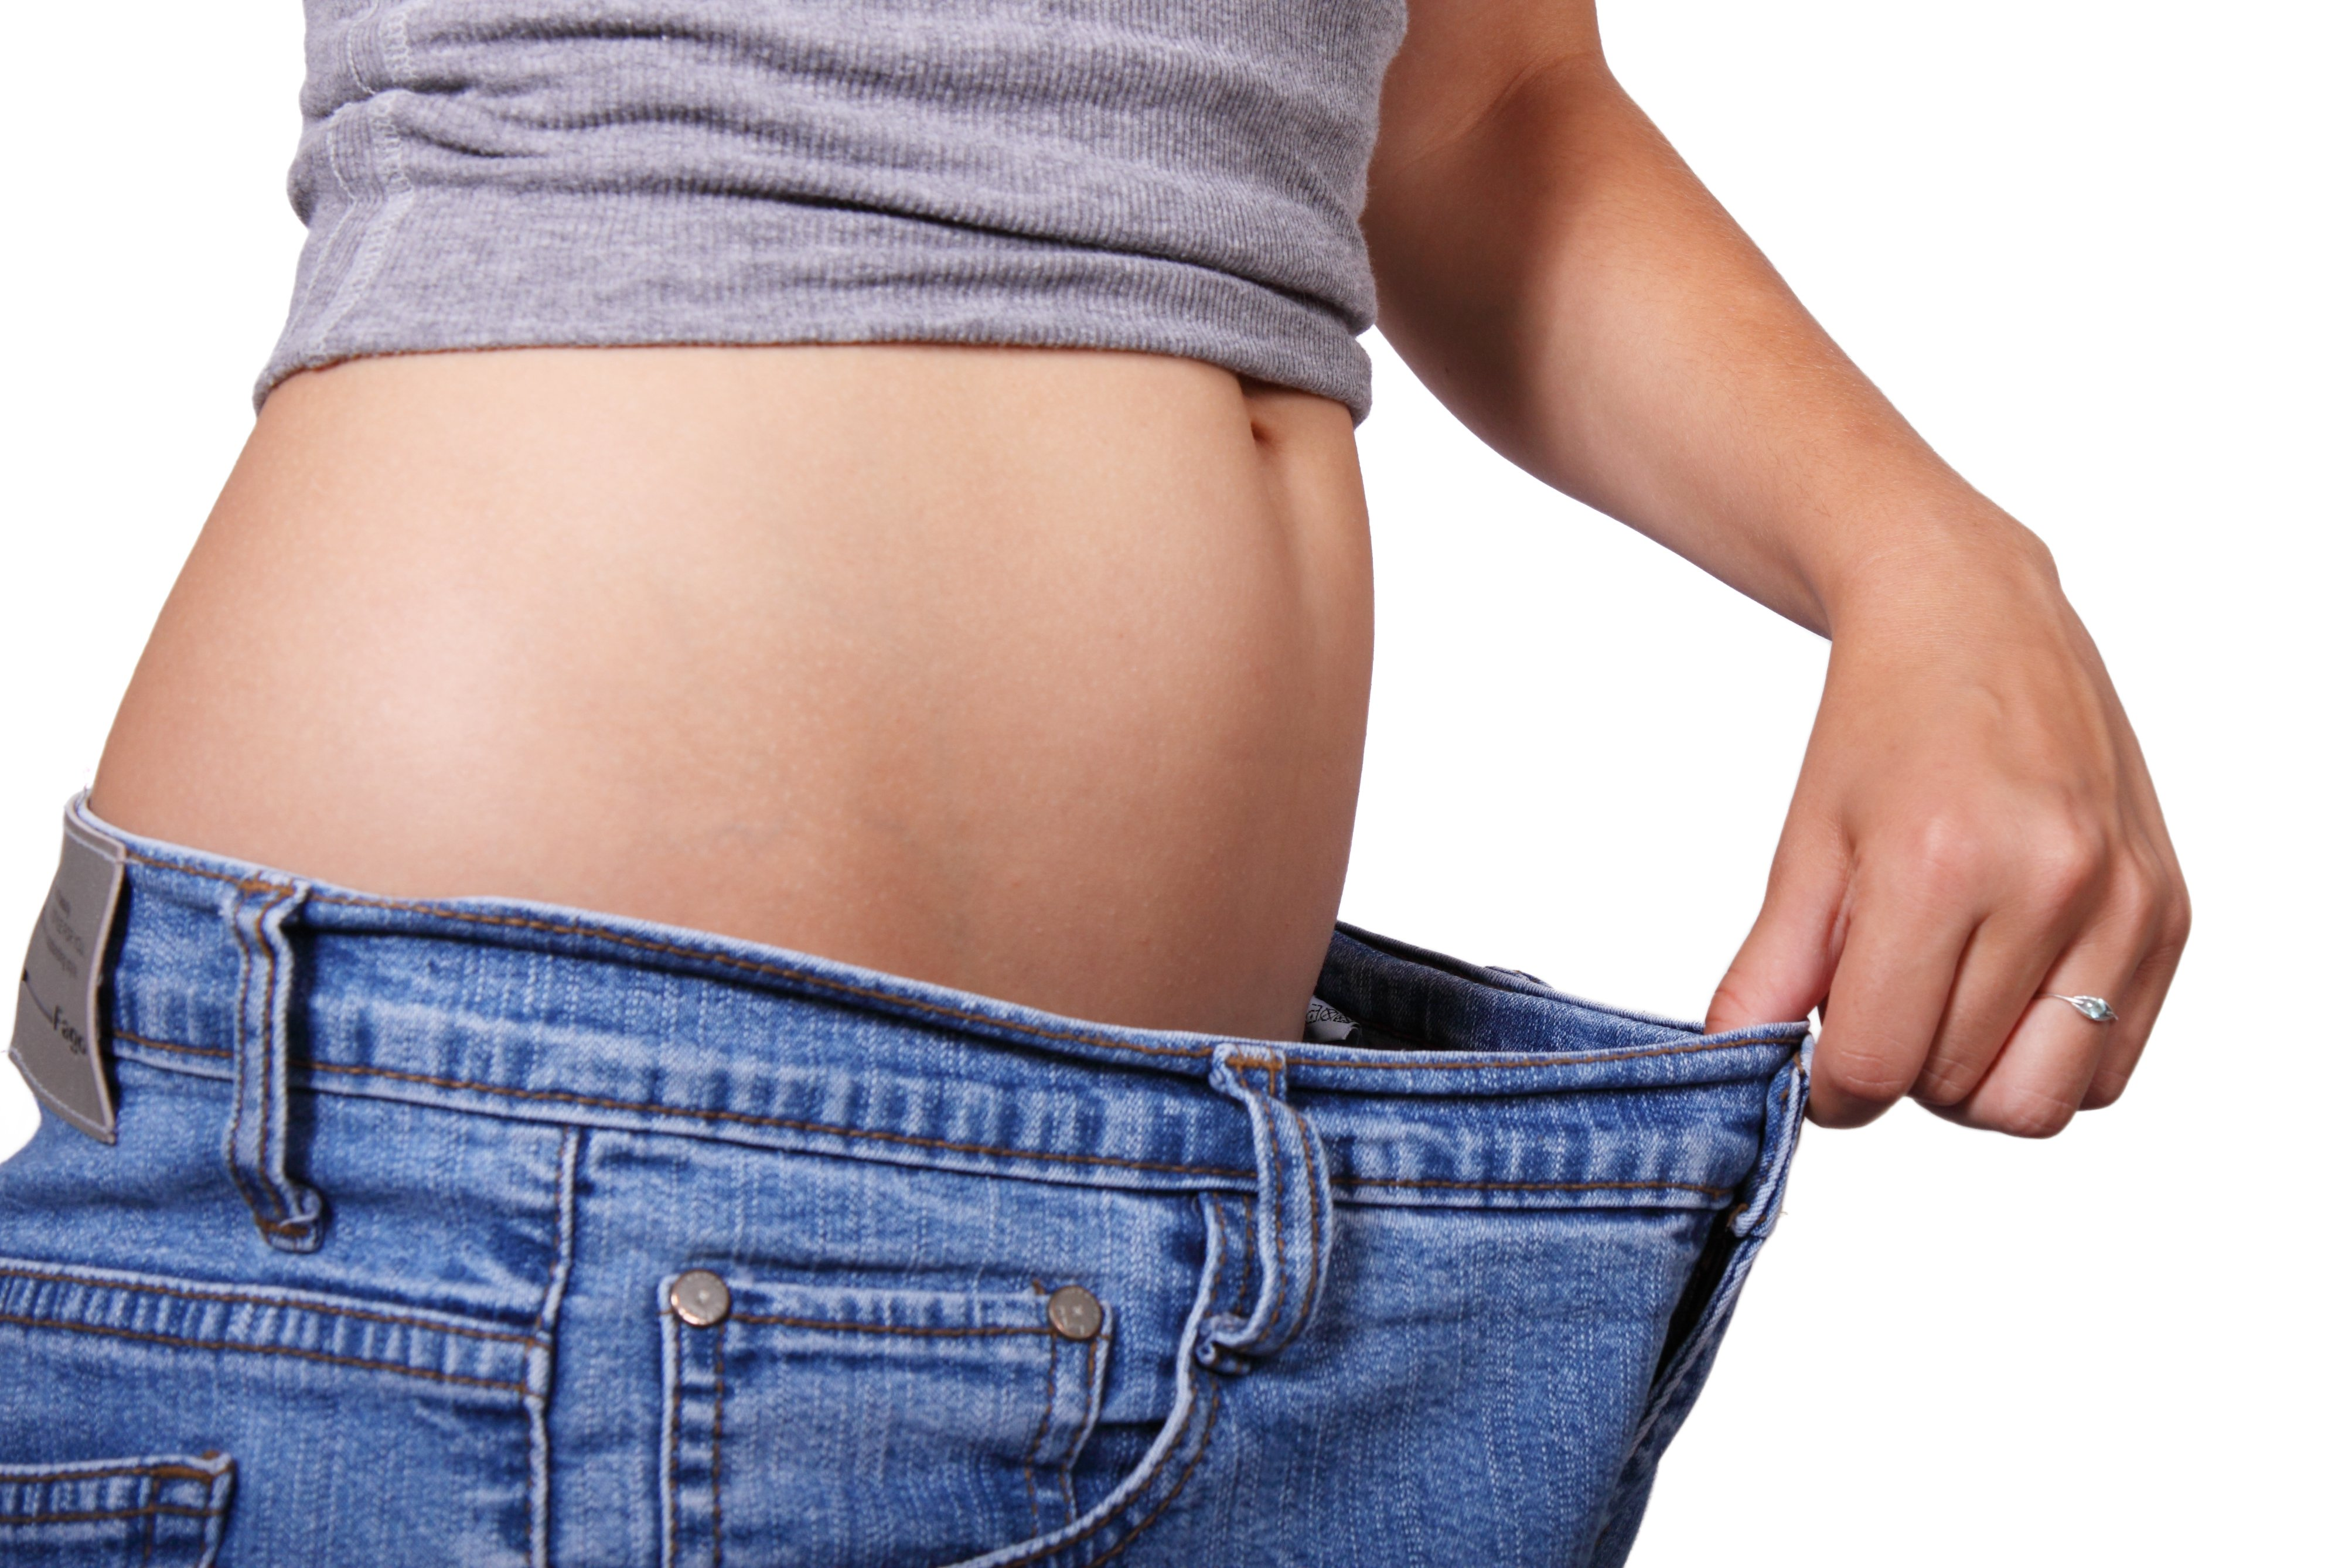 5 steps to better gut health